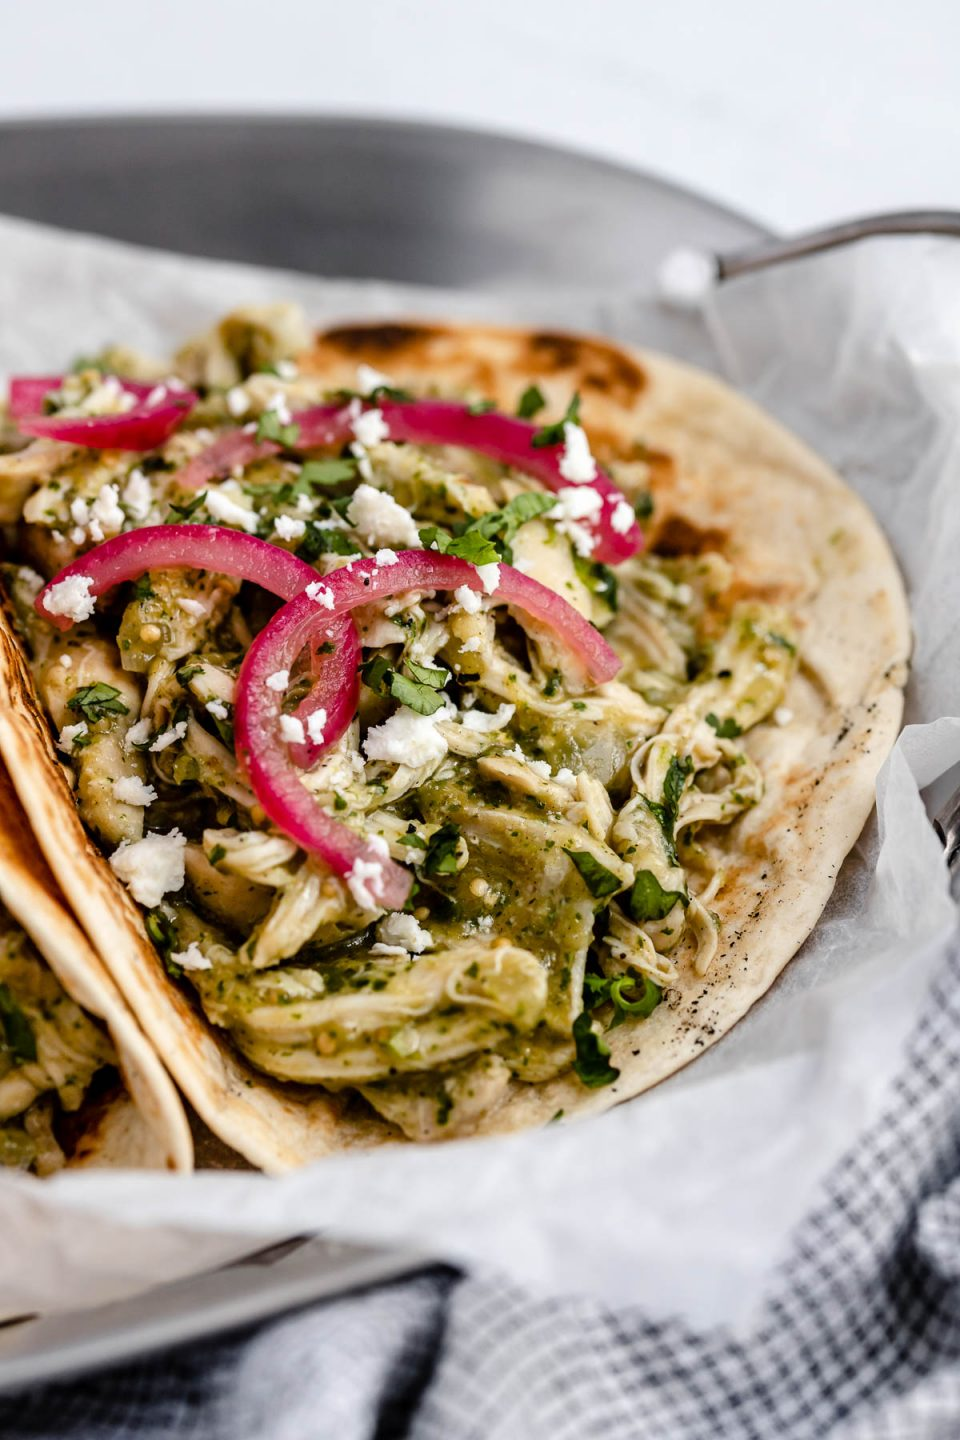 Side angle of salsa verde chicken (pollo verde) taco, topped with chopped cilantro and pickled red onions, placed on a metal tray with handles. The tray sits atop a light blue surface, next to a checkered blue linen napkin.